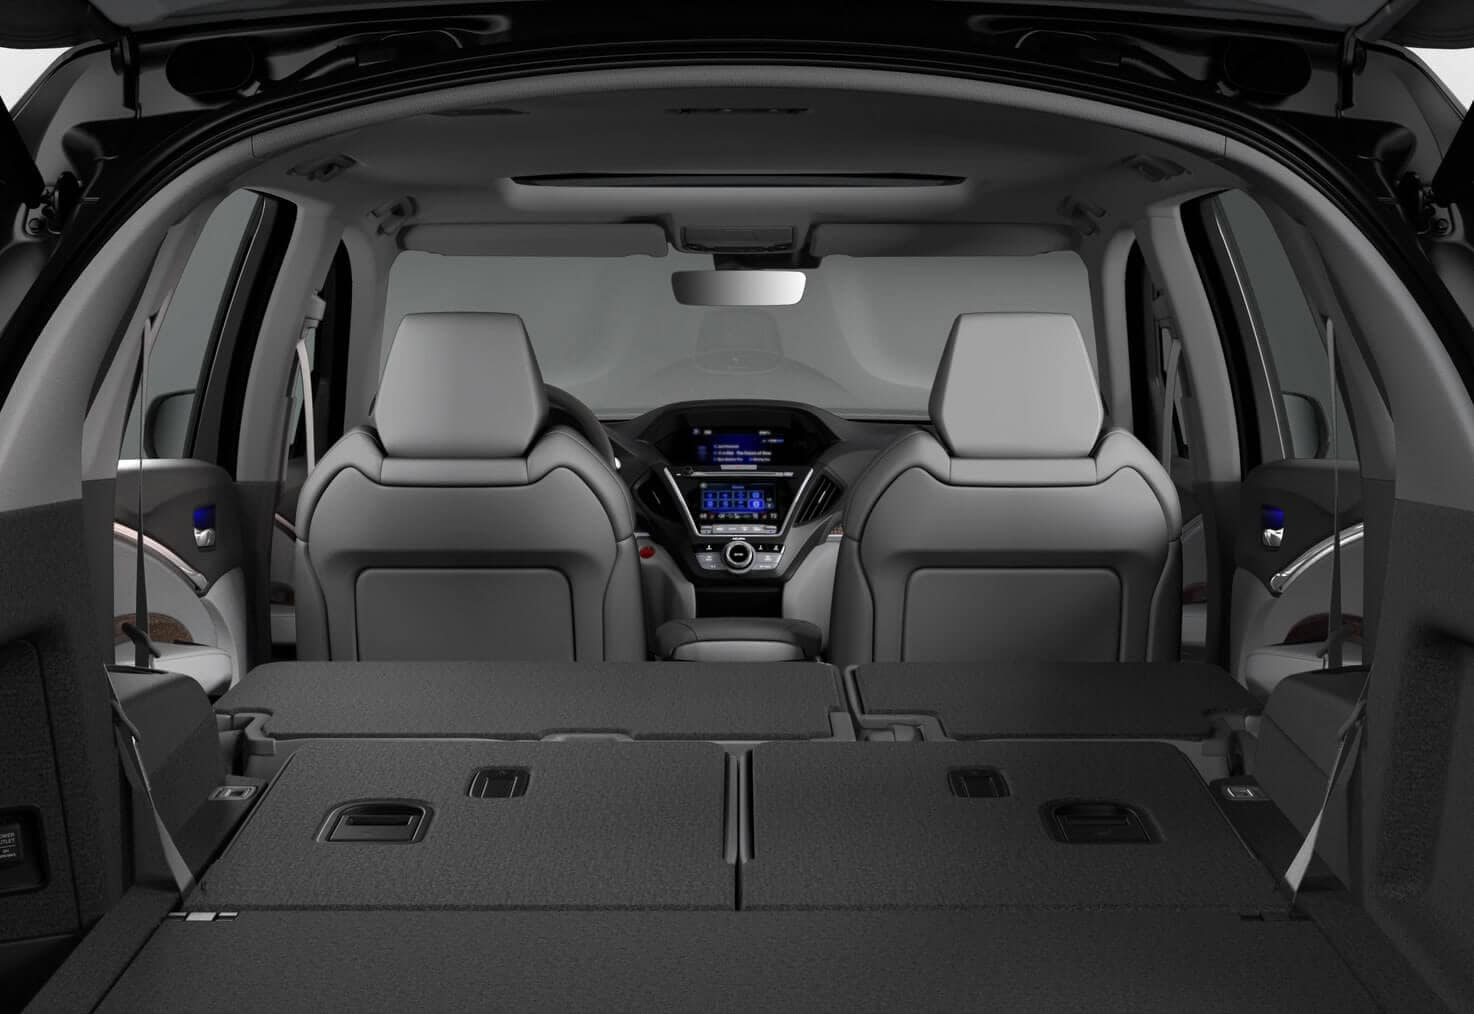 2018 Acura MDX Interior Cargo Space